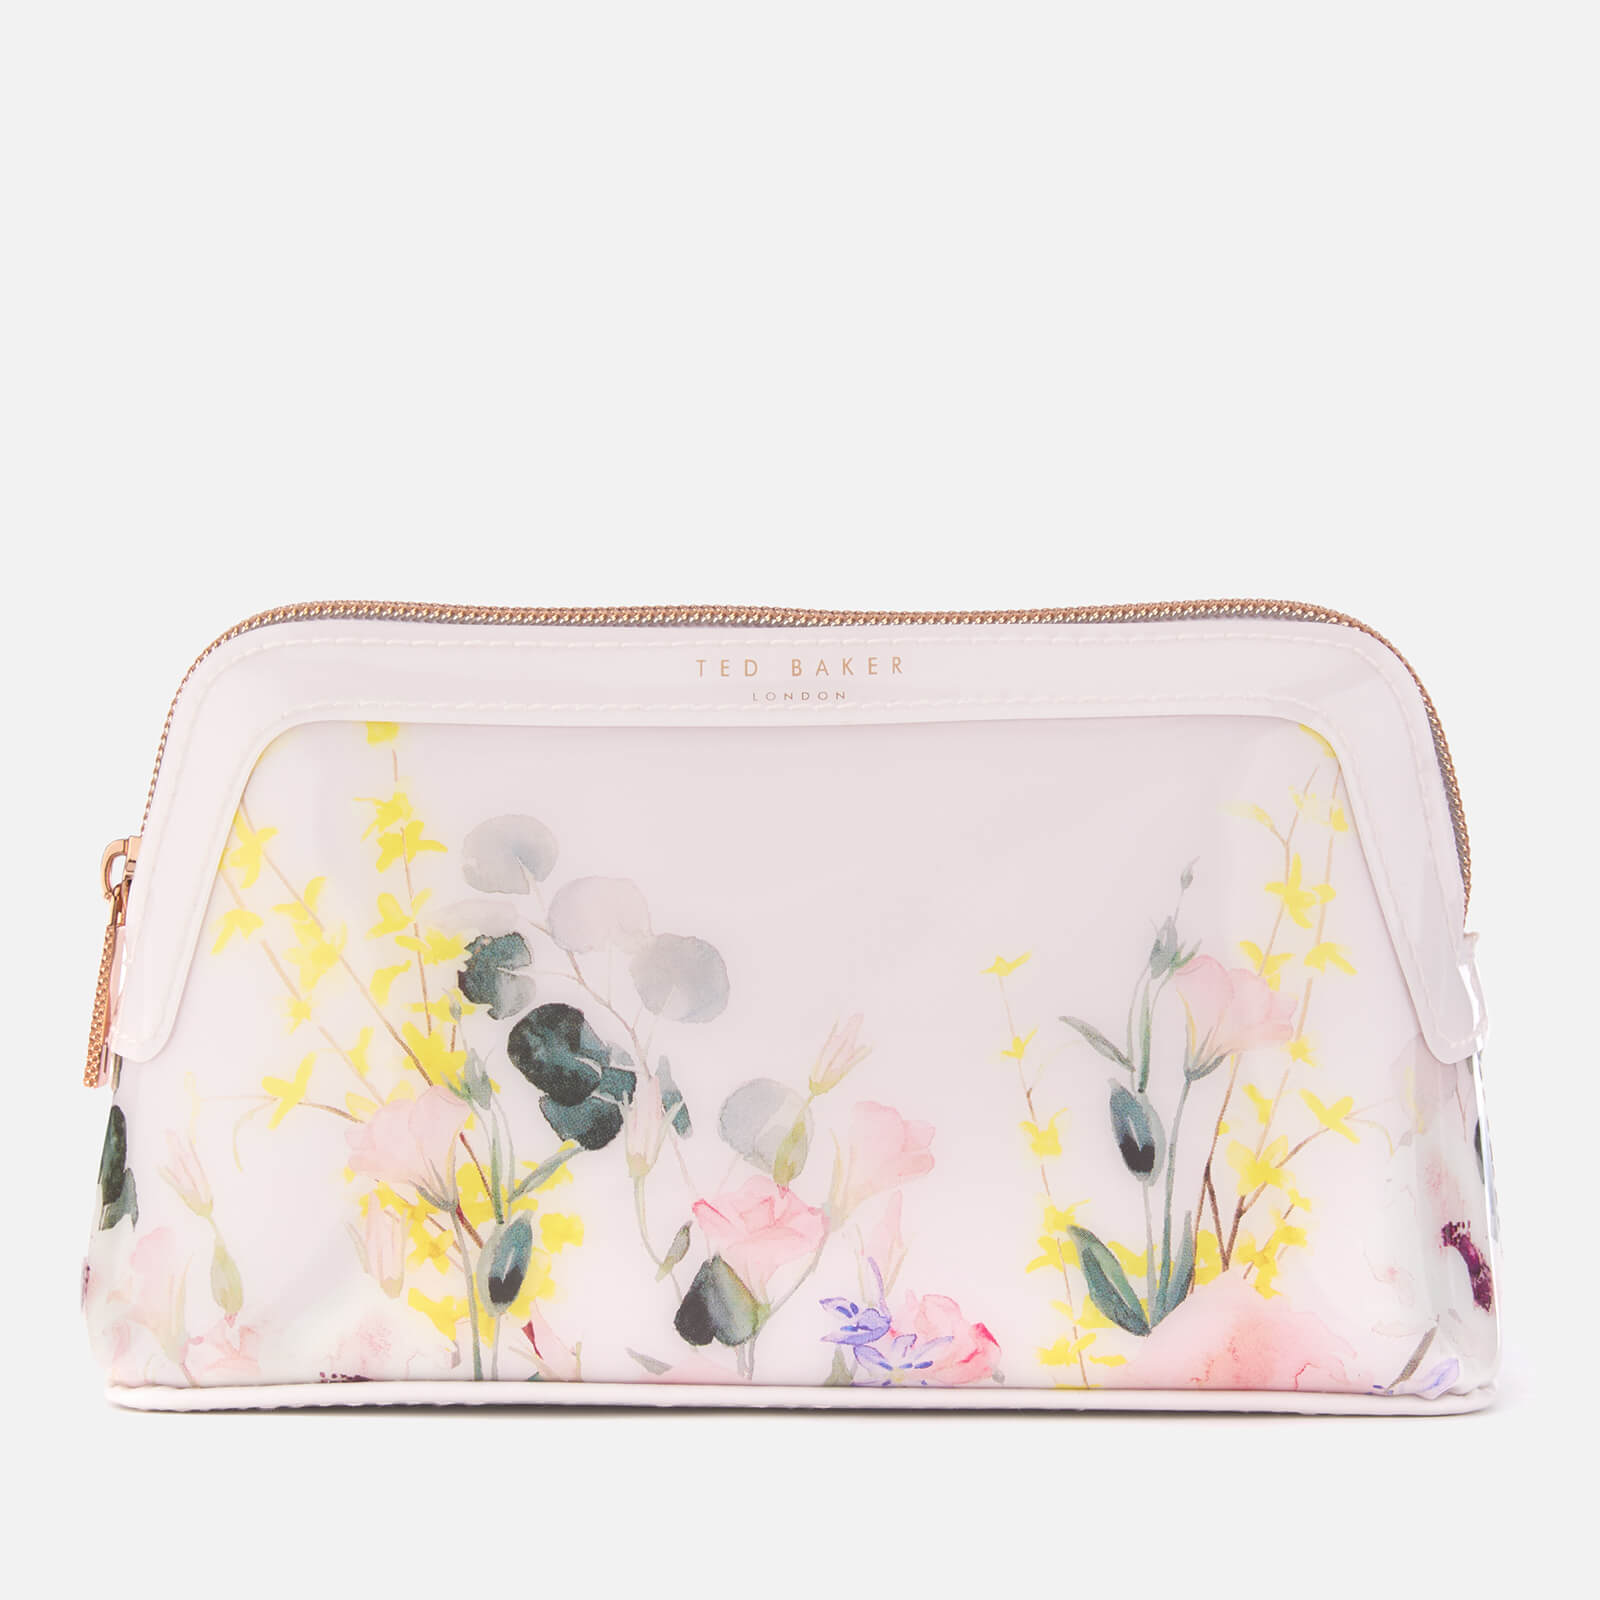 9a7fd48161 Ted Baker Women's Teegan Bow Detail Small Make-Up Bag - Nude/Pink Womens  Accessories | TheHut.com